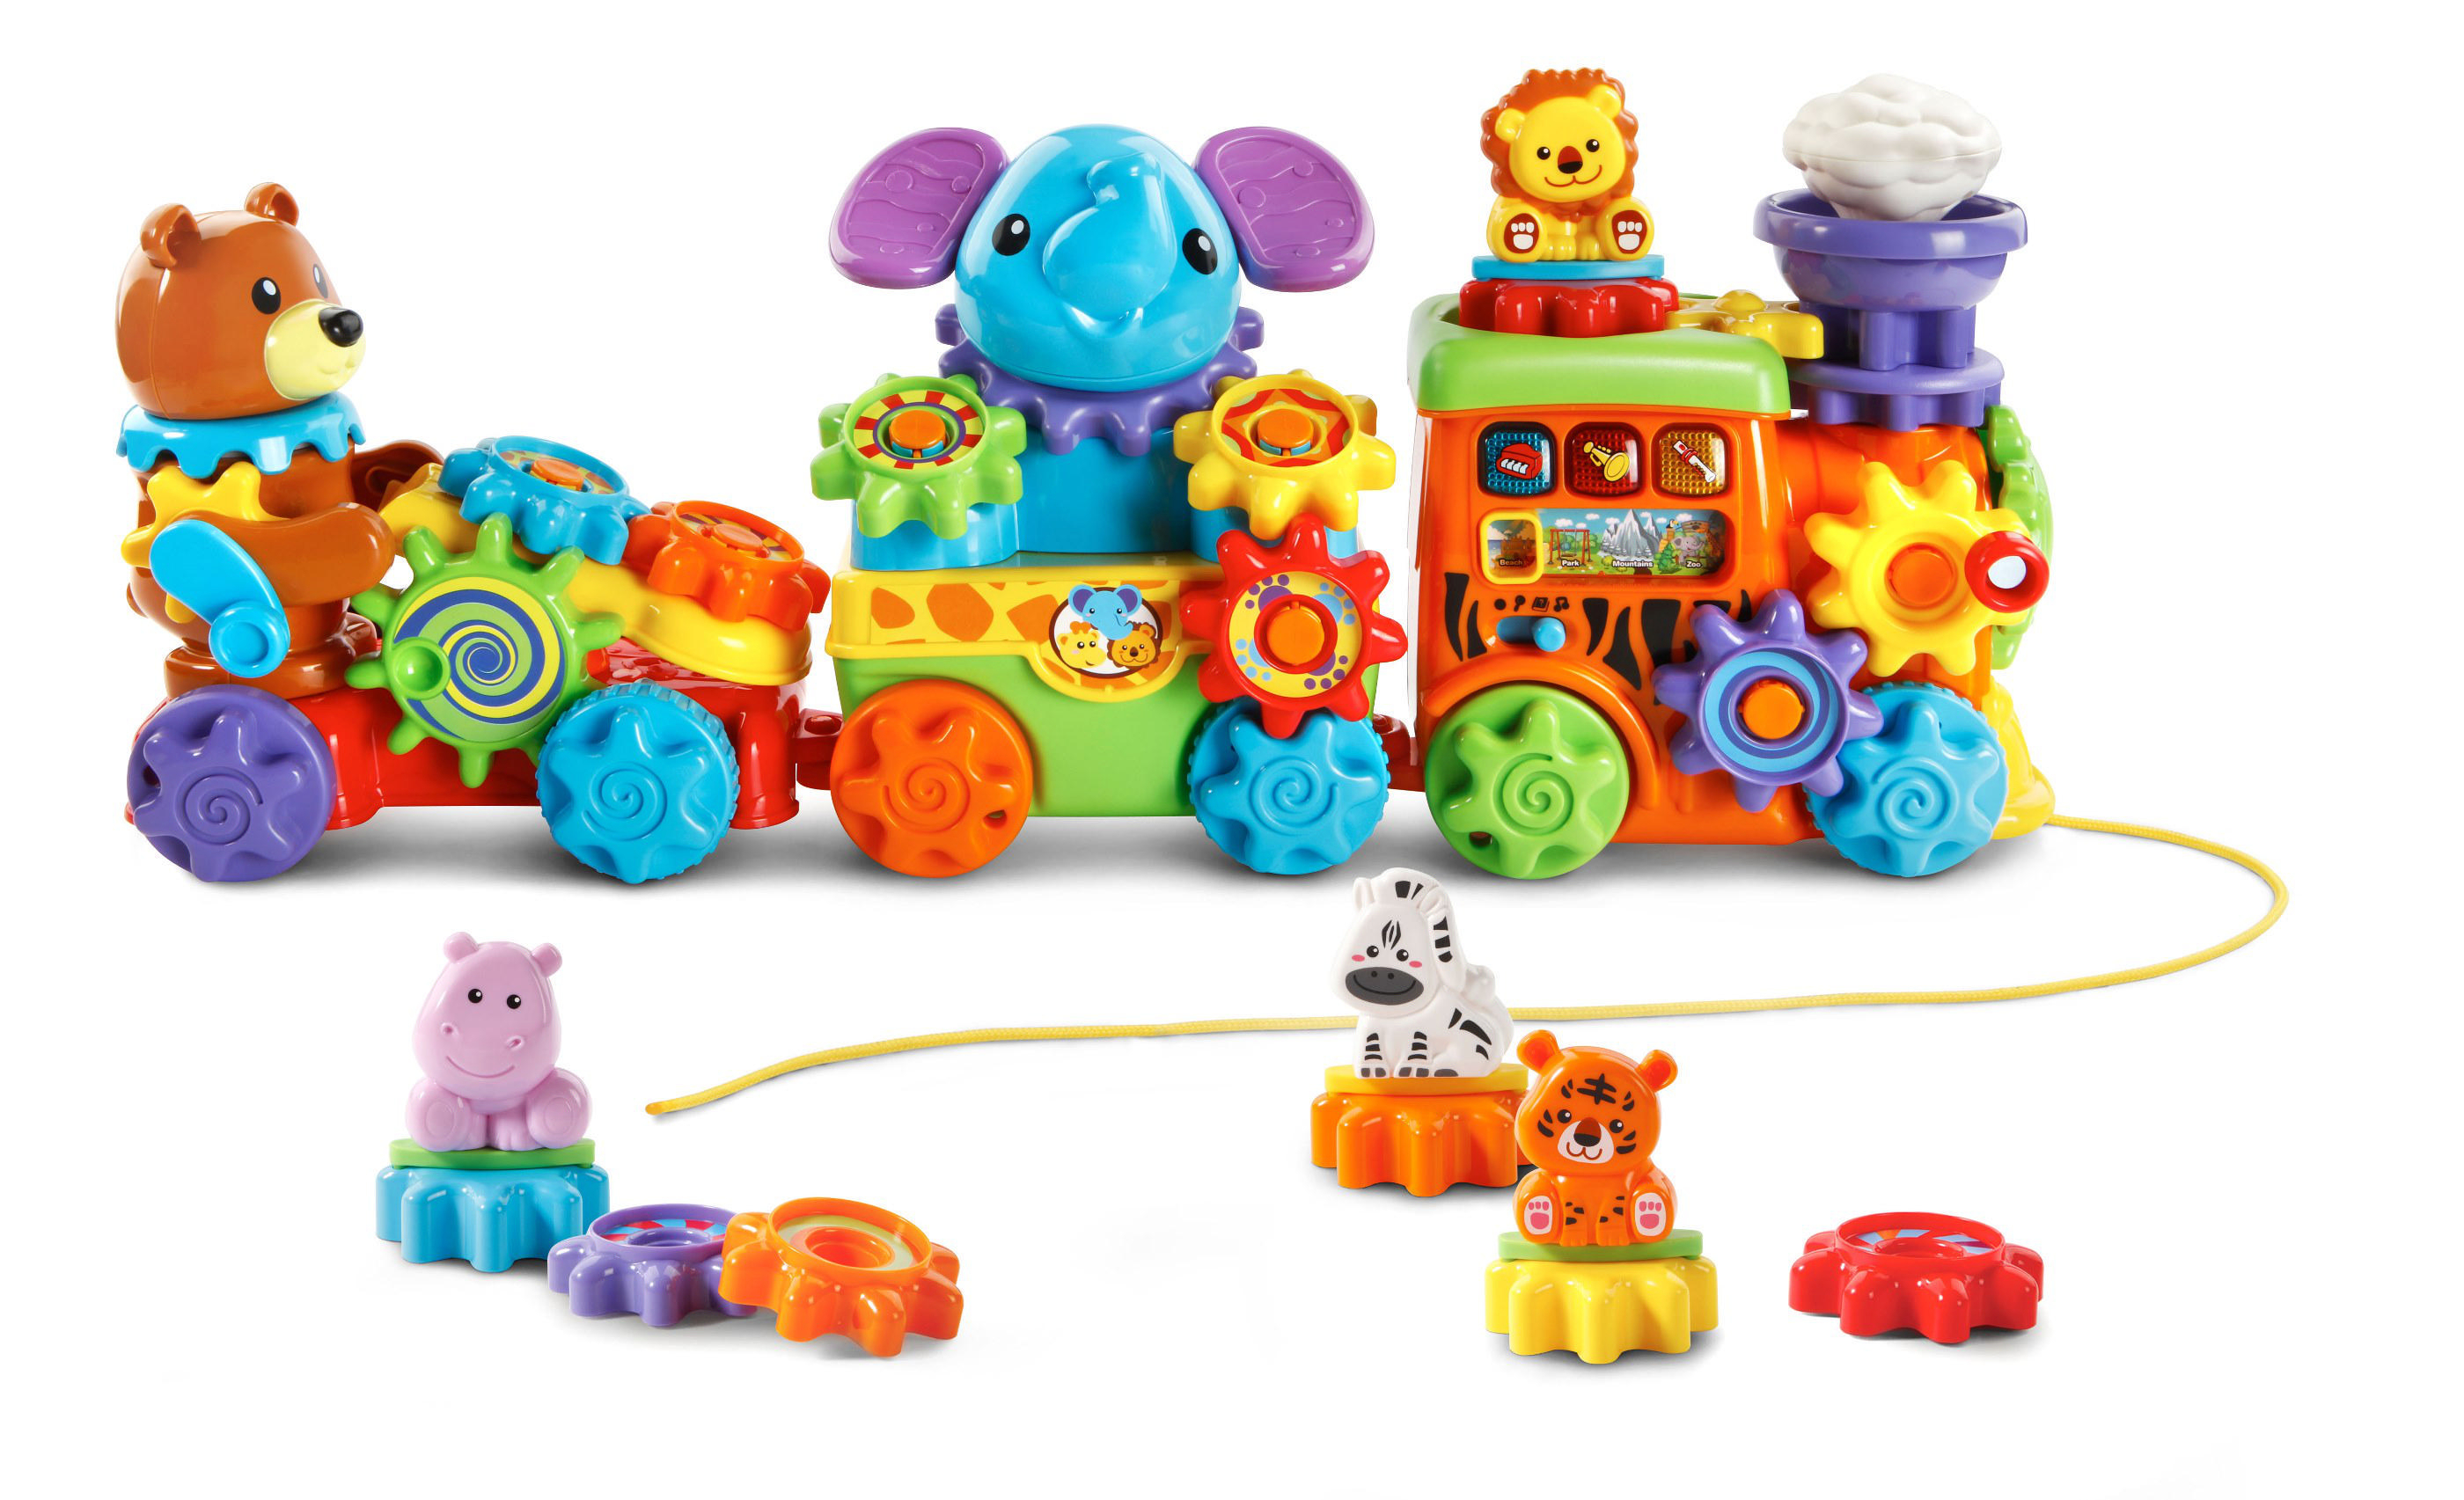 Toddler Toys Physical Toys : Best baby toddler toys in tenbuyerguide